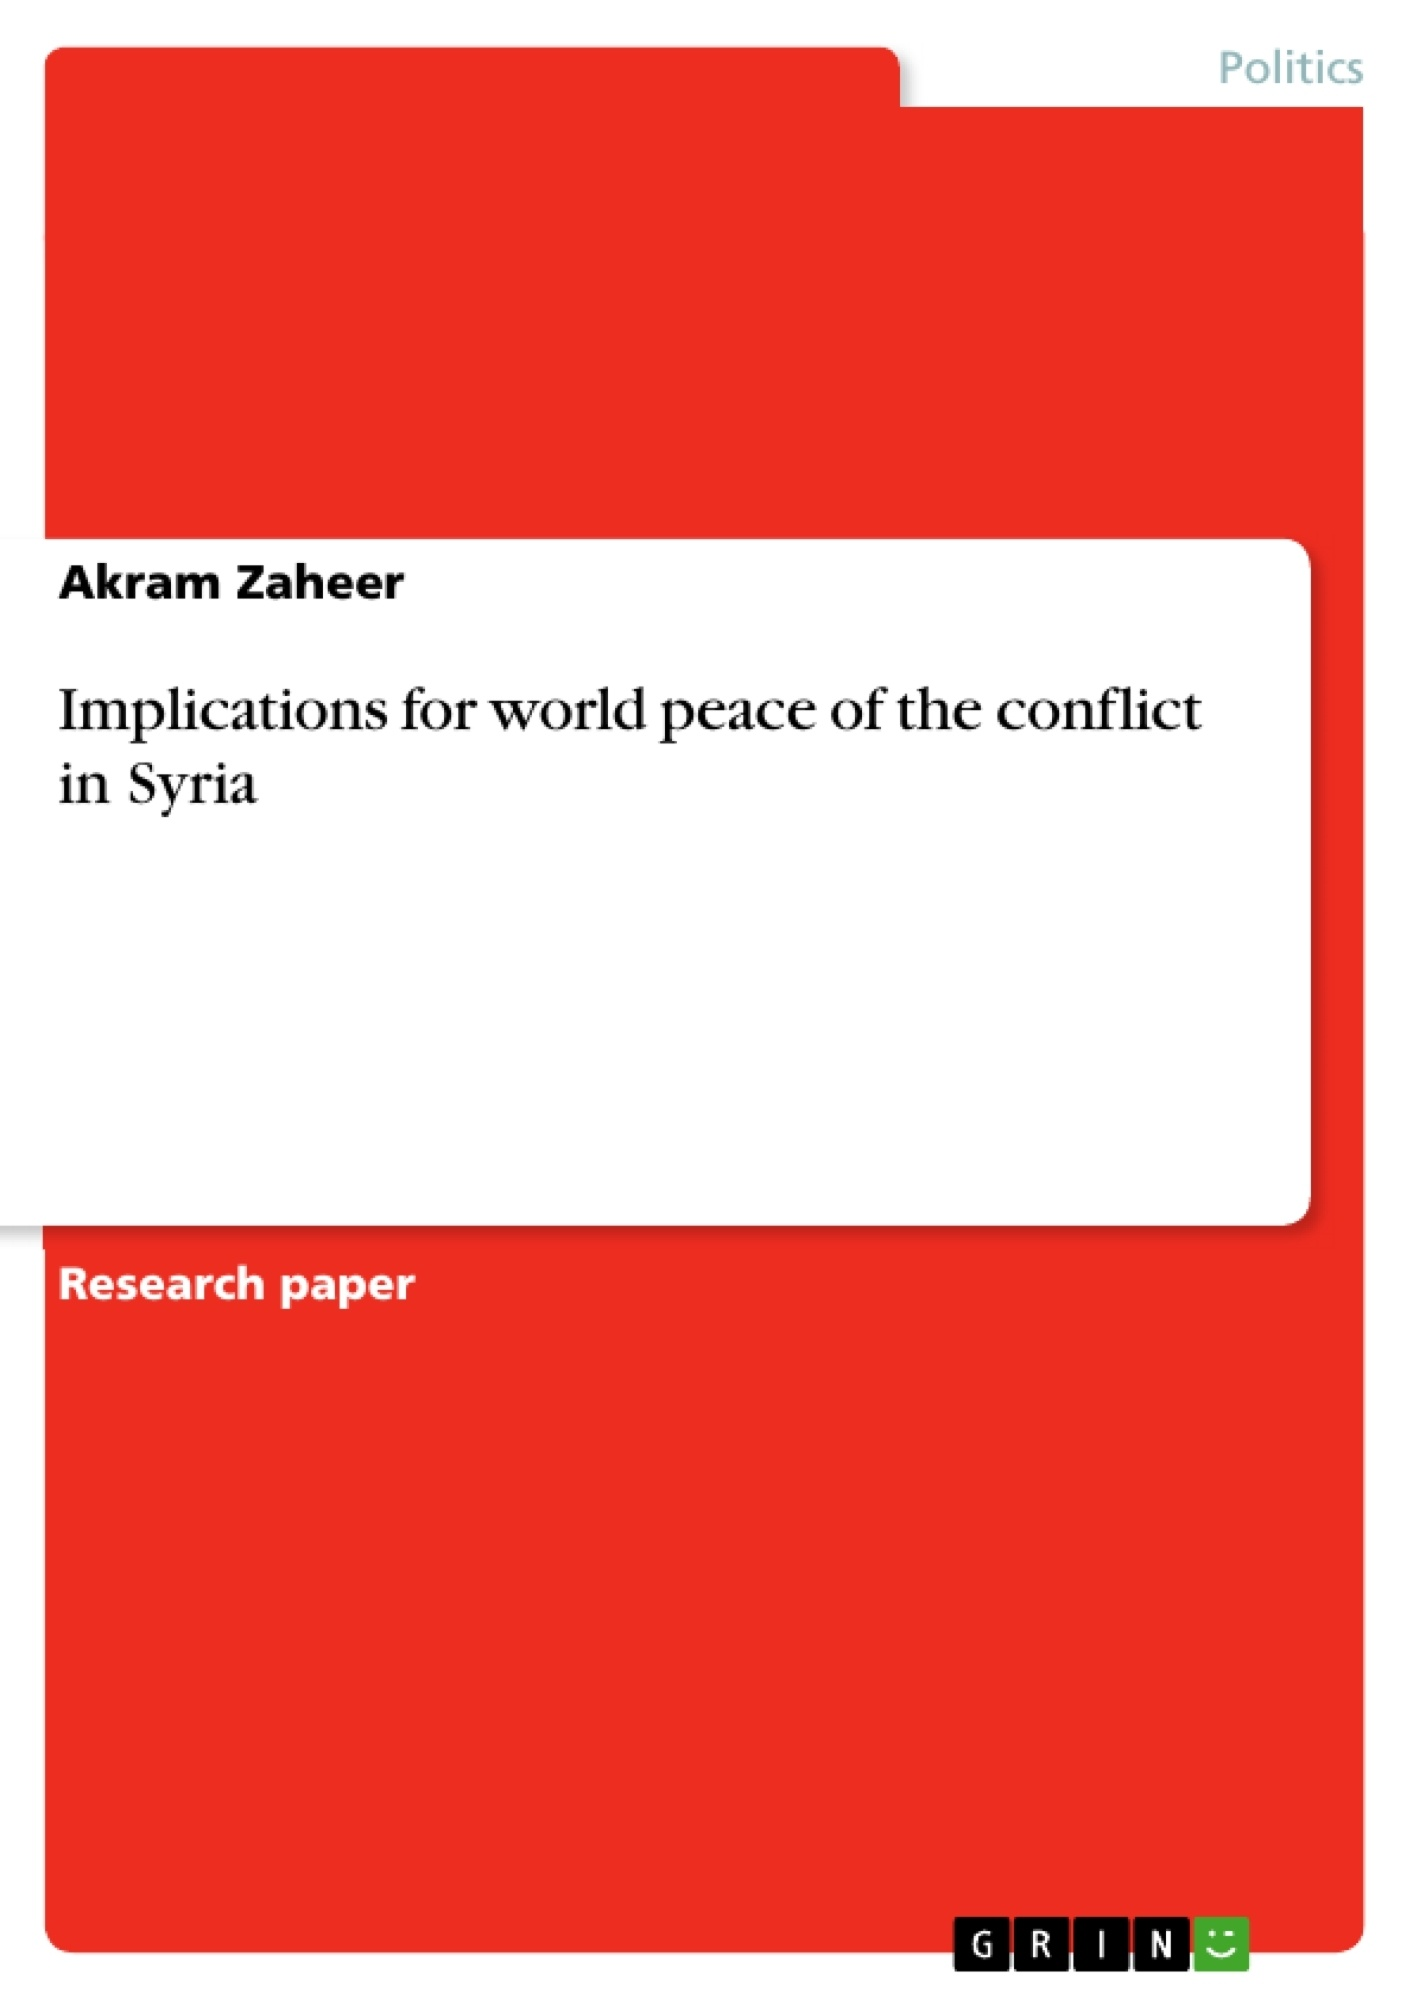 implications for world peace of the conflict in syria publish upload your own papers earn money and win an iphone 7